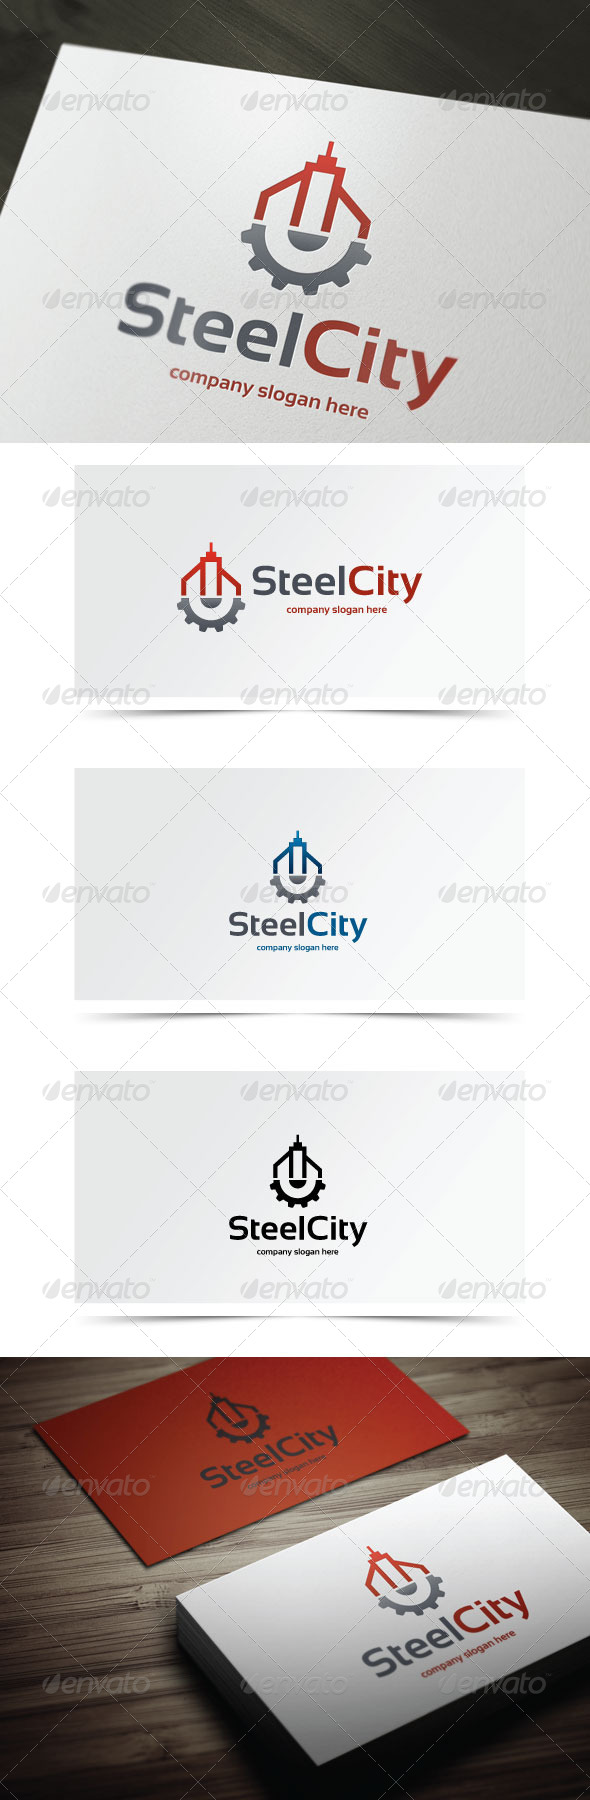 GraphicRiver Steel City 5939376